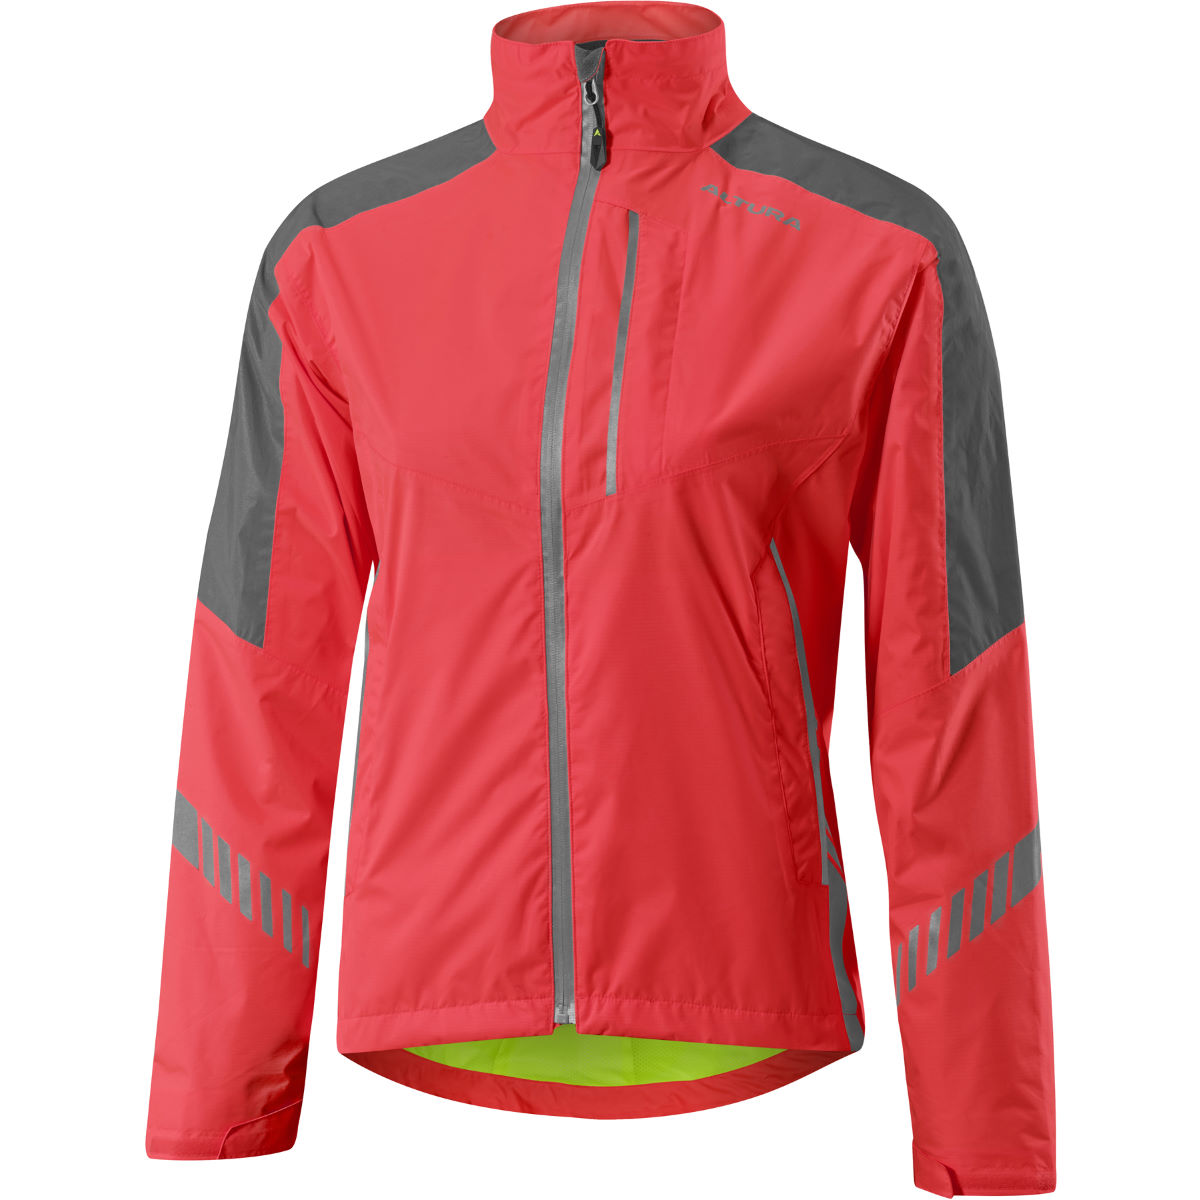 Chaqueta impermeable Altura Nightvision 3 para mujer - Impermeables - ciclismo